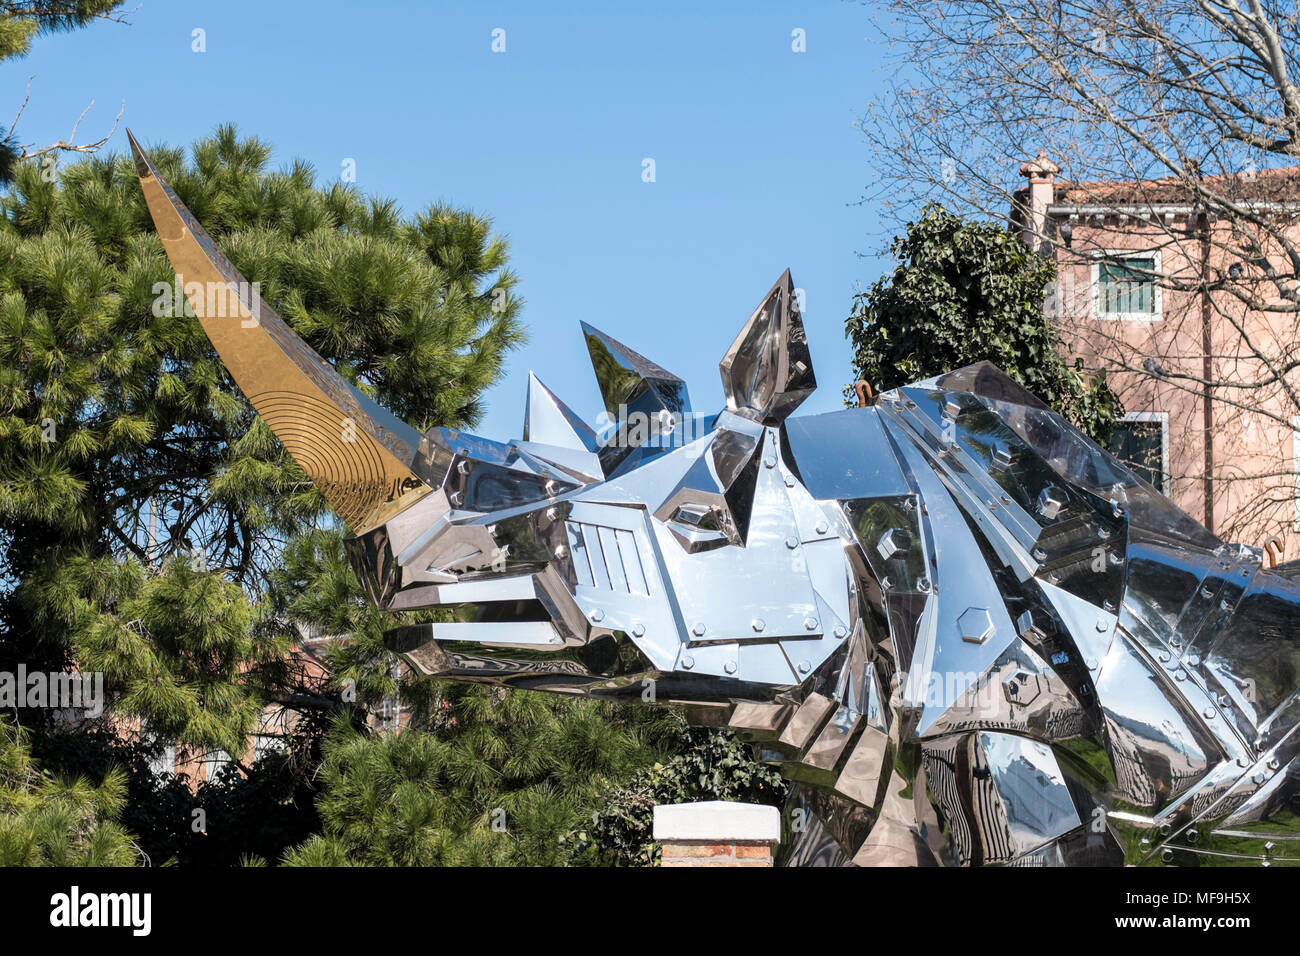 """""""King Kong Rhino'' by Taiwanese artist Li-Jen Shih being exhibited at the Biennale gardens in venice, Italy, 2018 - Stock Image"""